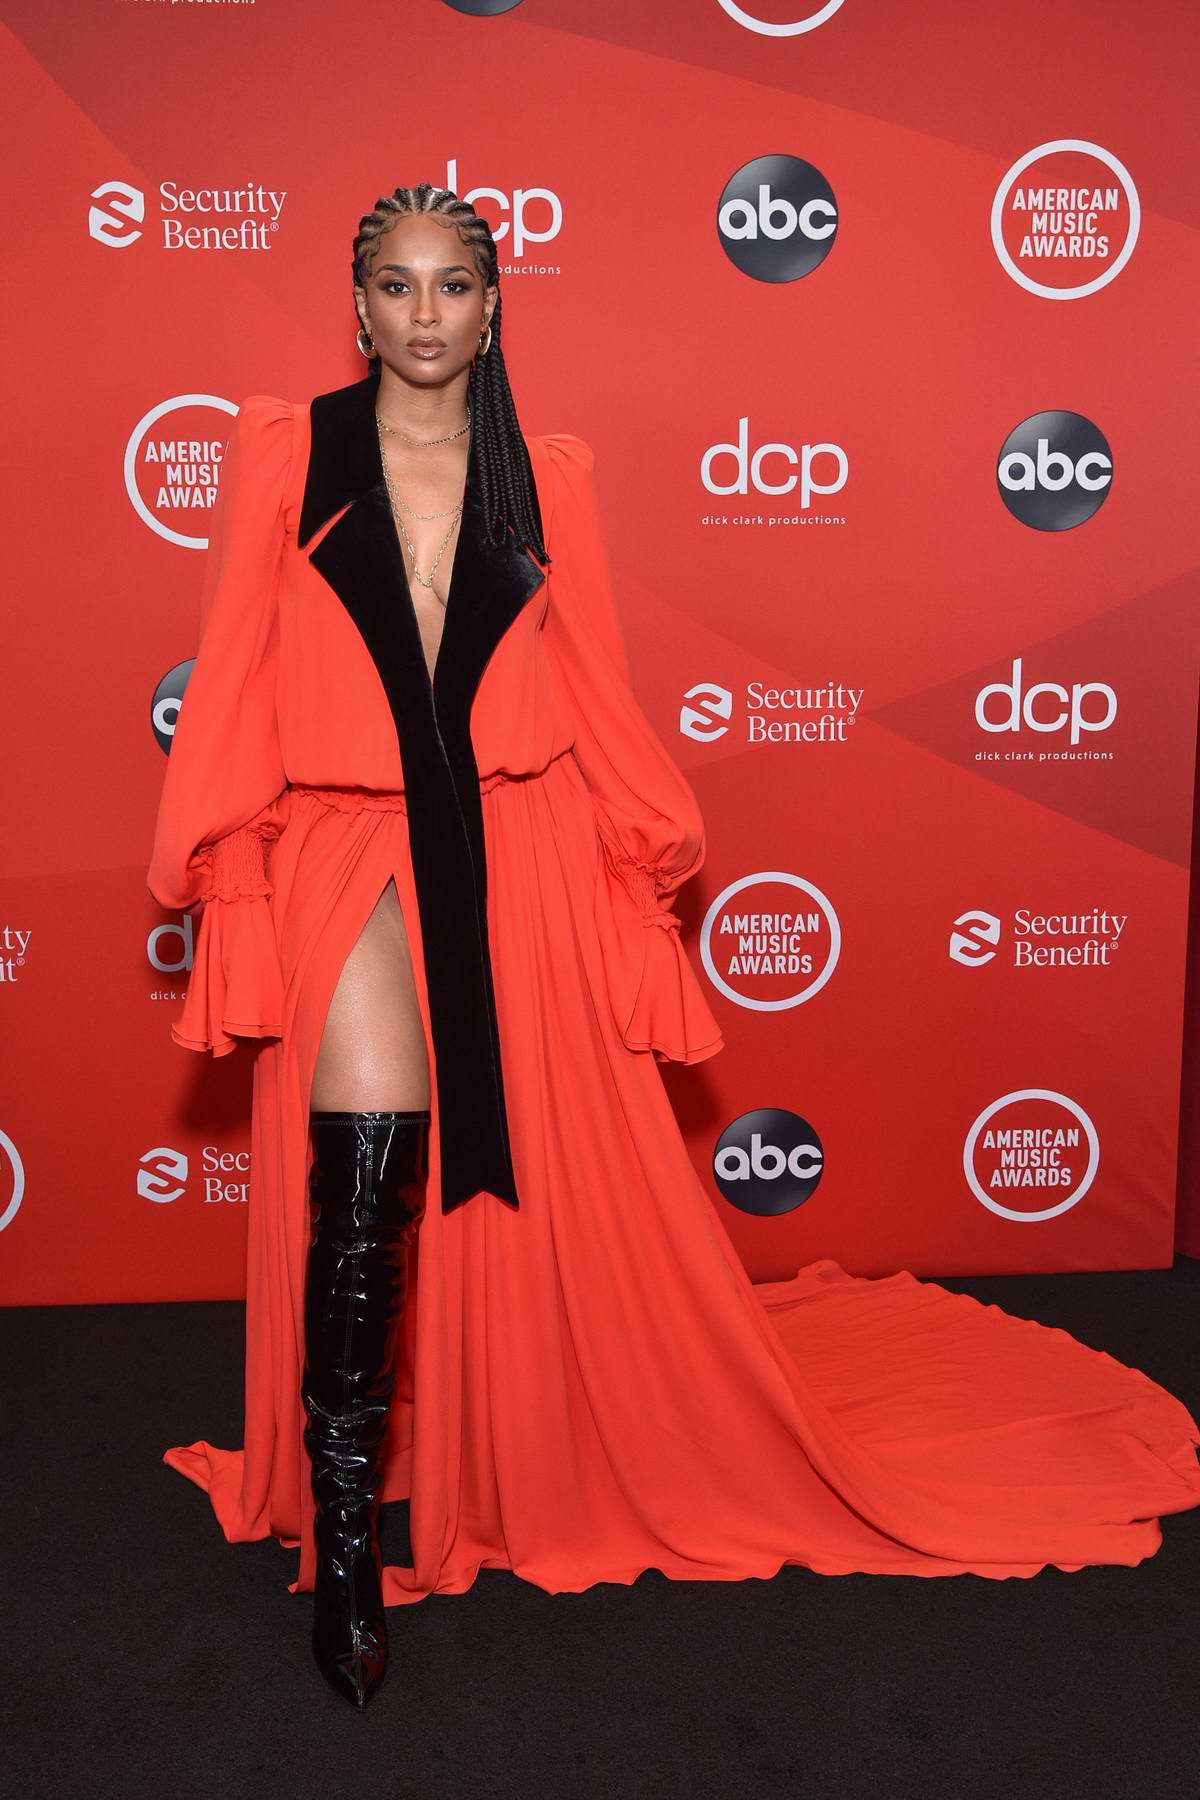 Ciara attends the 2020 American Music Awards at the Microsoft Theater in Los Angeles